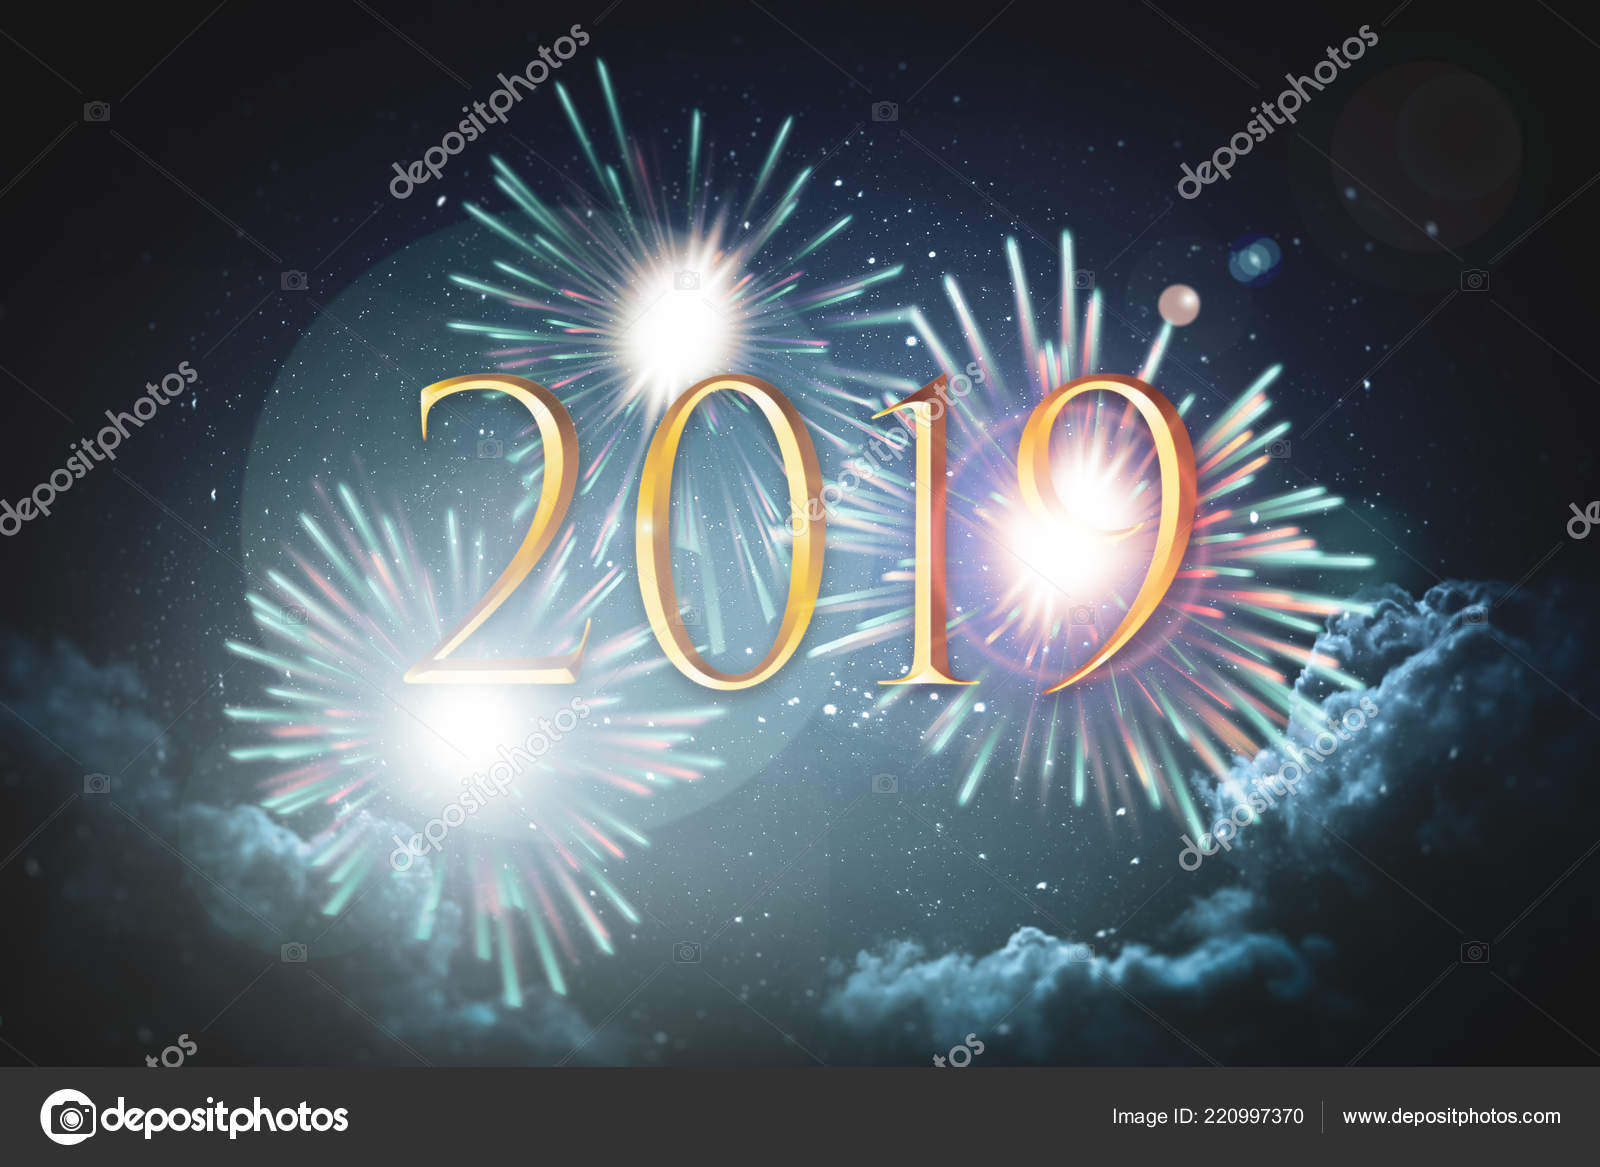 2019 text on a background of fireworks sparks and starry sky with clouds new years eve poster photo by guteksk7